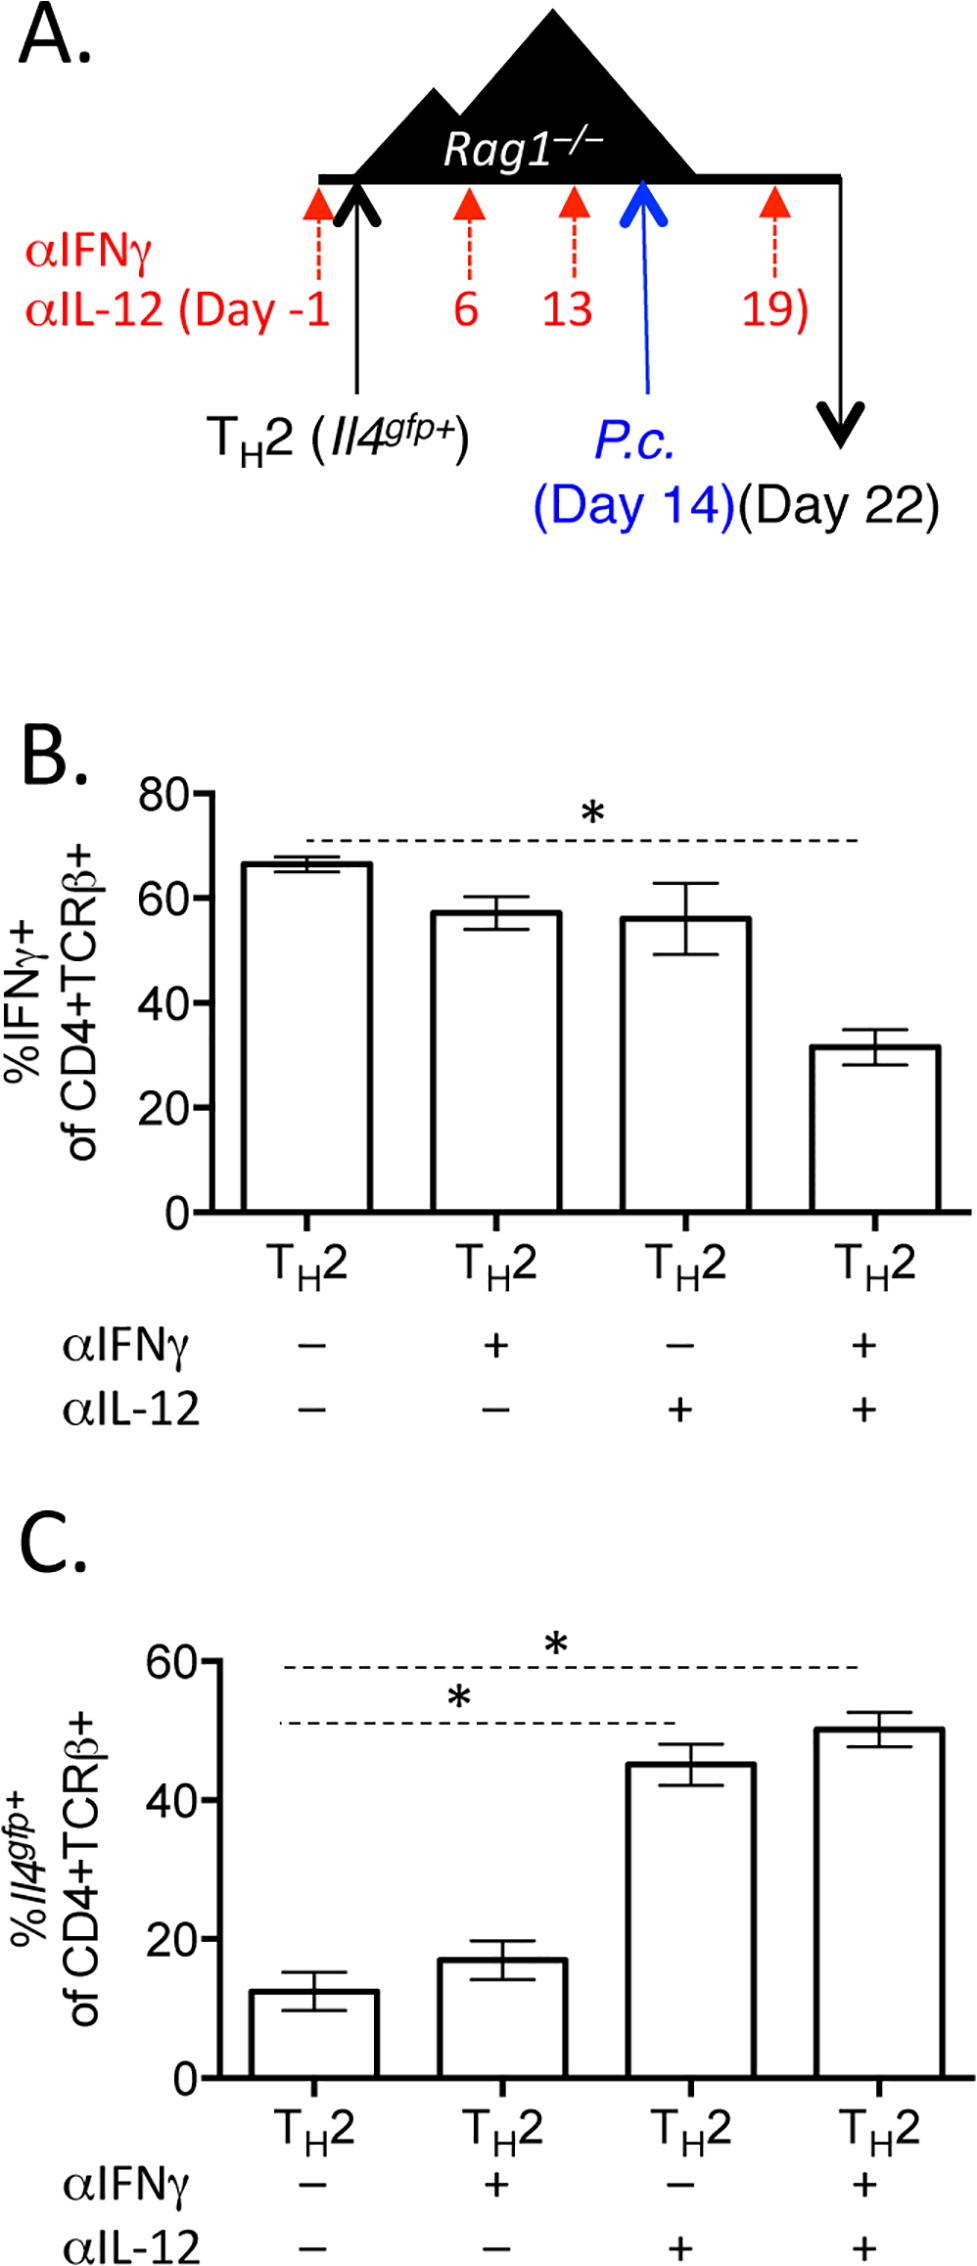 Blockade of IL-12 and IFNγ prevents optimal IFNγ production by Th2 cells.